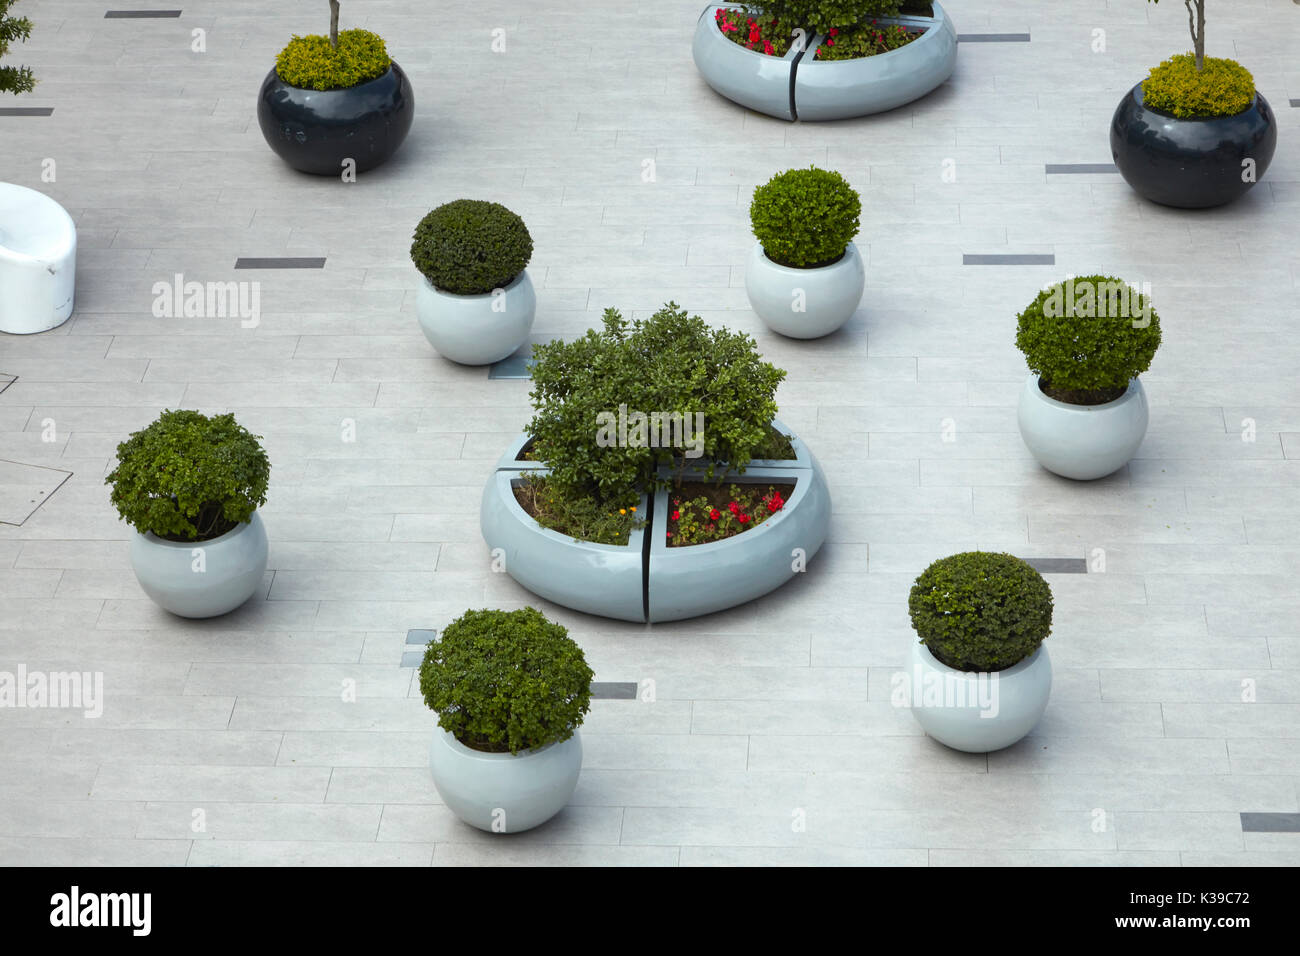 Plants in plaza at Lacomar cliff-top shopping mall, Miraflores, Lima, Peru, South America - Stock Image